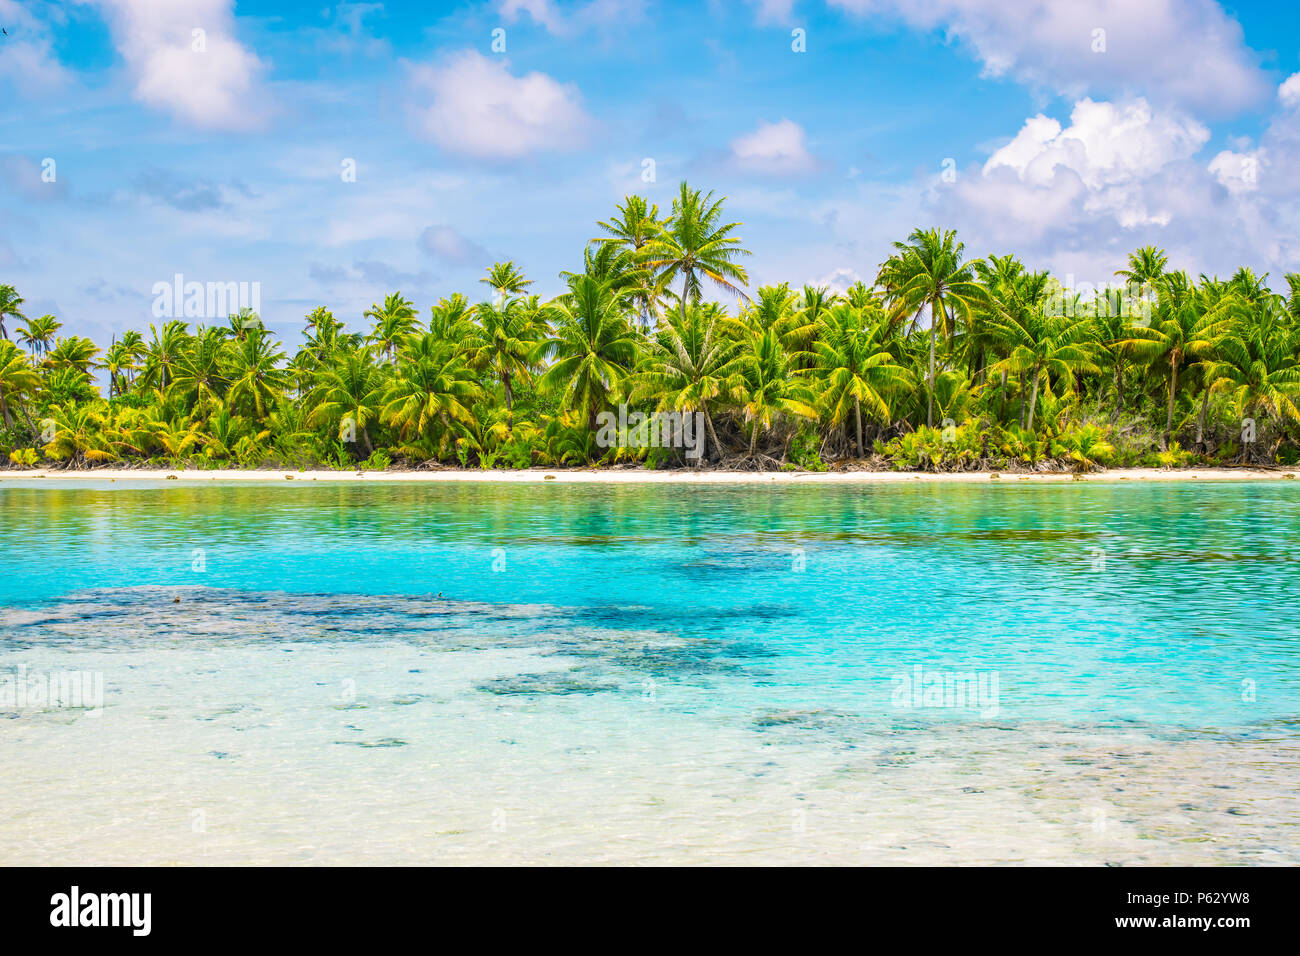 Tropical palm trees and lagoon of Fakarava, French Polynesia. Summer vacation concept. - Stock Image